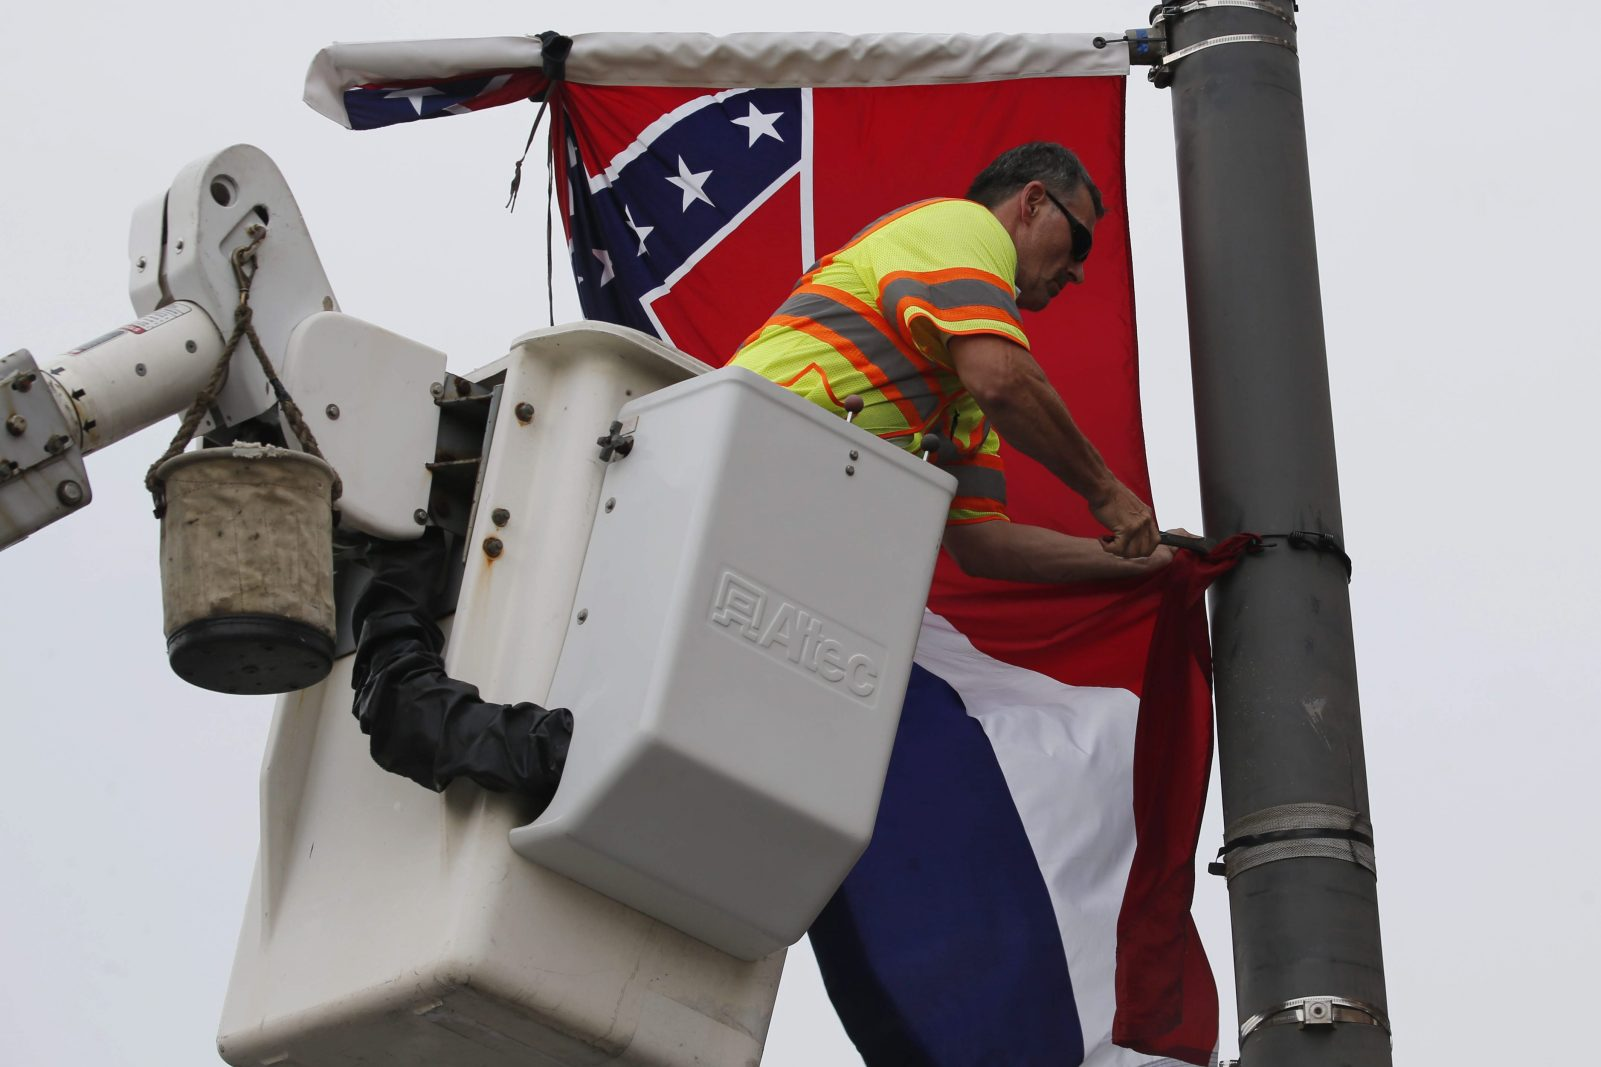 A city worker removes the Mississippi flag from a public light stand after a standoff with protesters on Broad Street in Philadelphia, Monday, July 25, 2016. (Photo by Derek Gee)